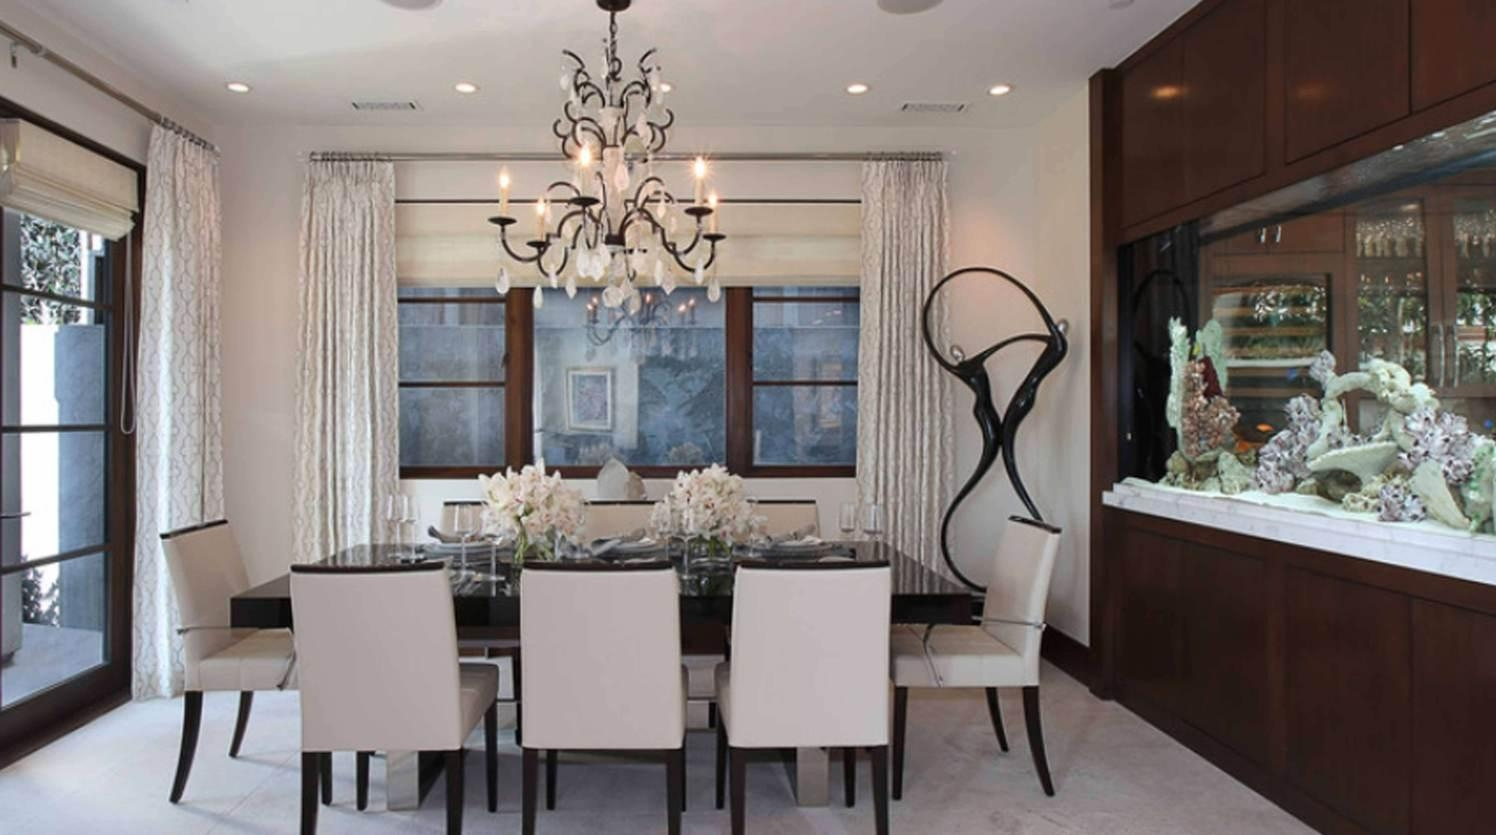 Dining Room : Wall Art For Dining Room Stunning Metal Wall Art On With Regard To Unusual Metal Wall Art (View 10 of 20)